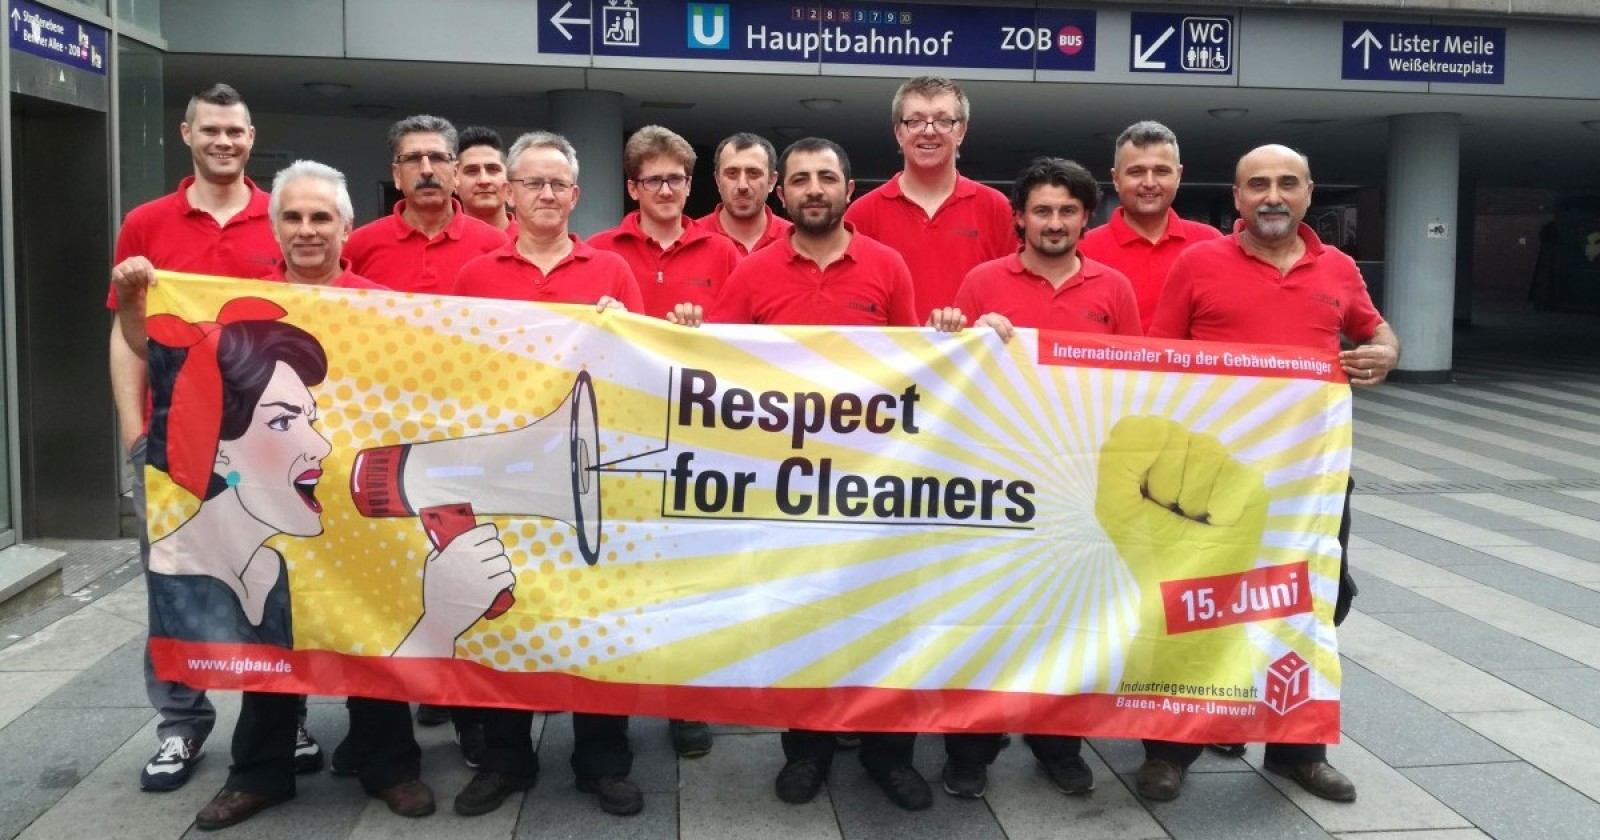 OHNE UNS LÄUFT HIER NICHTS! Respect for Cleaners!!!